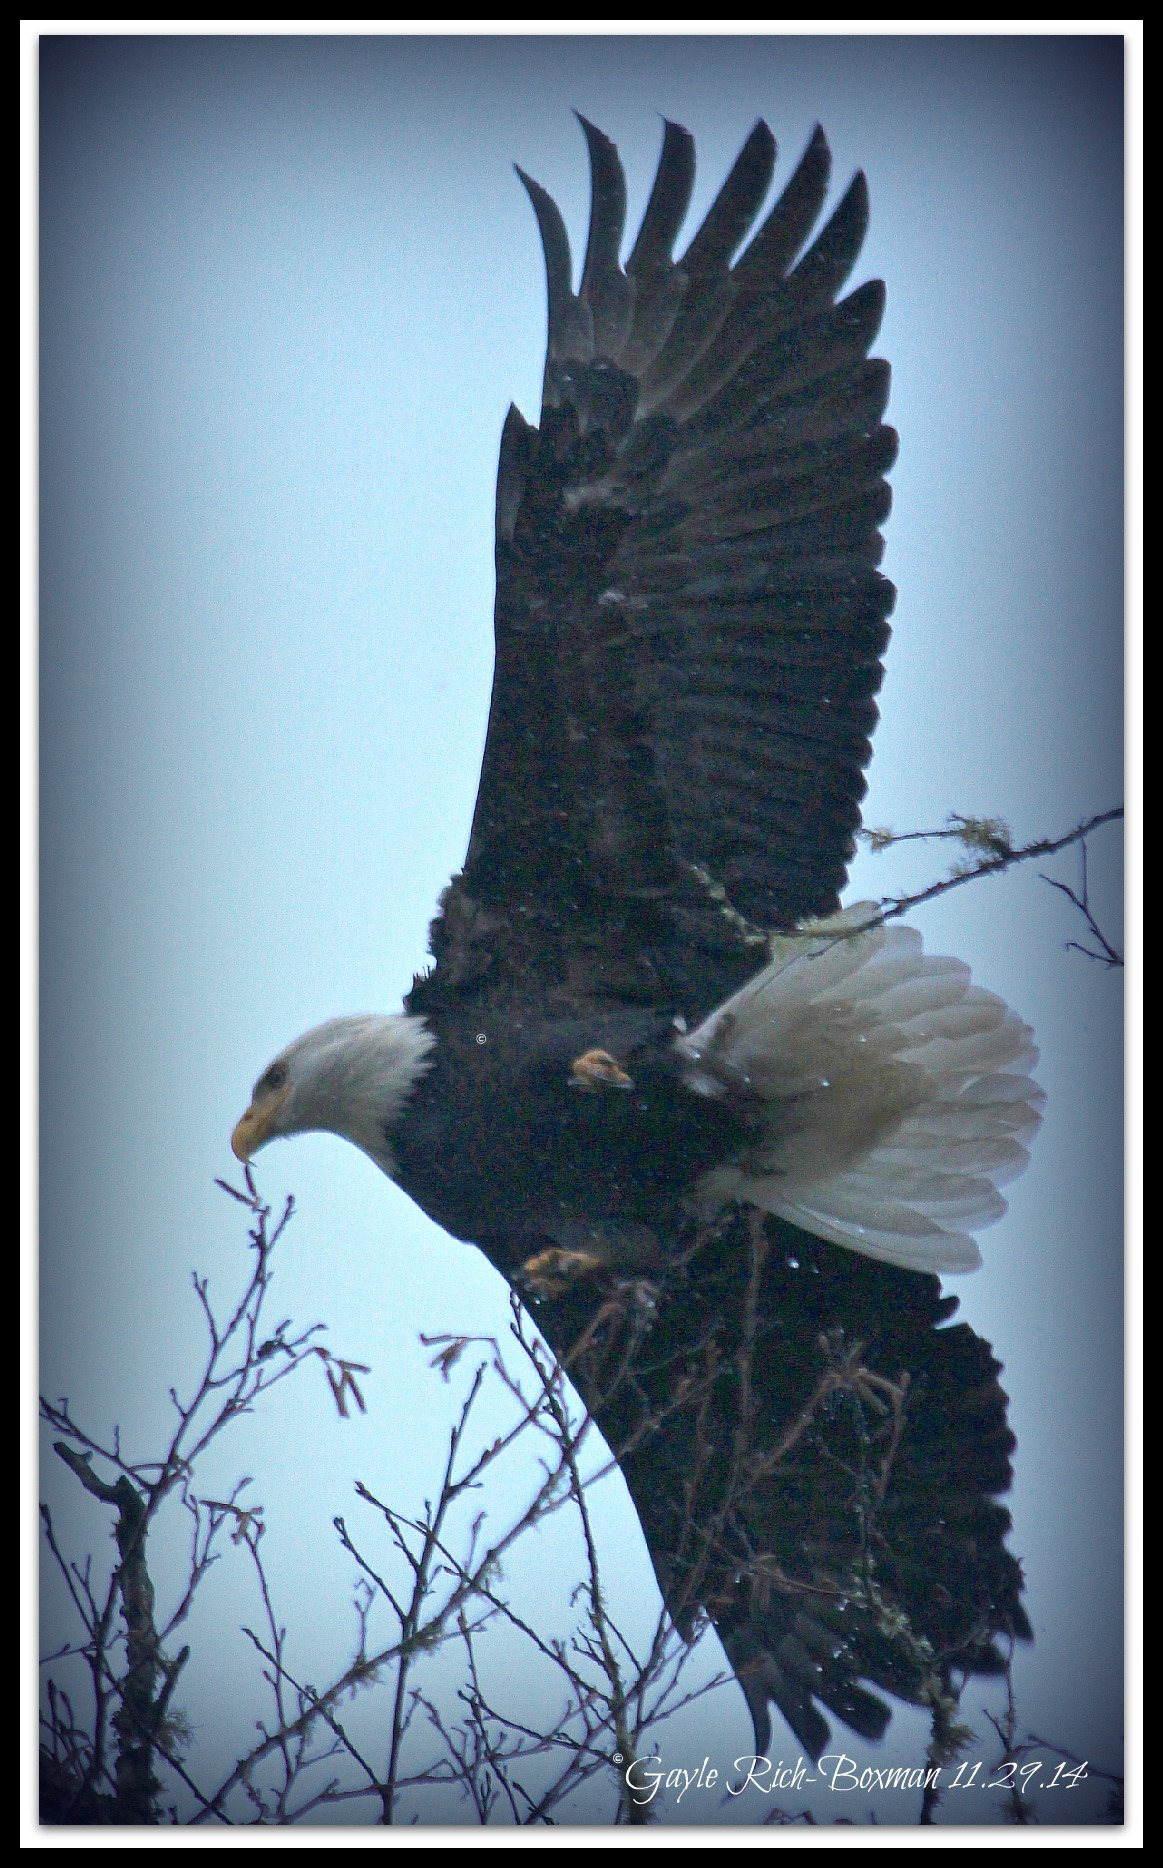 Bald Eagle in Birkenfeld OR-Gayle Rich-Boxman